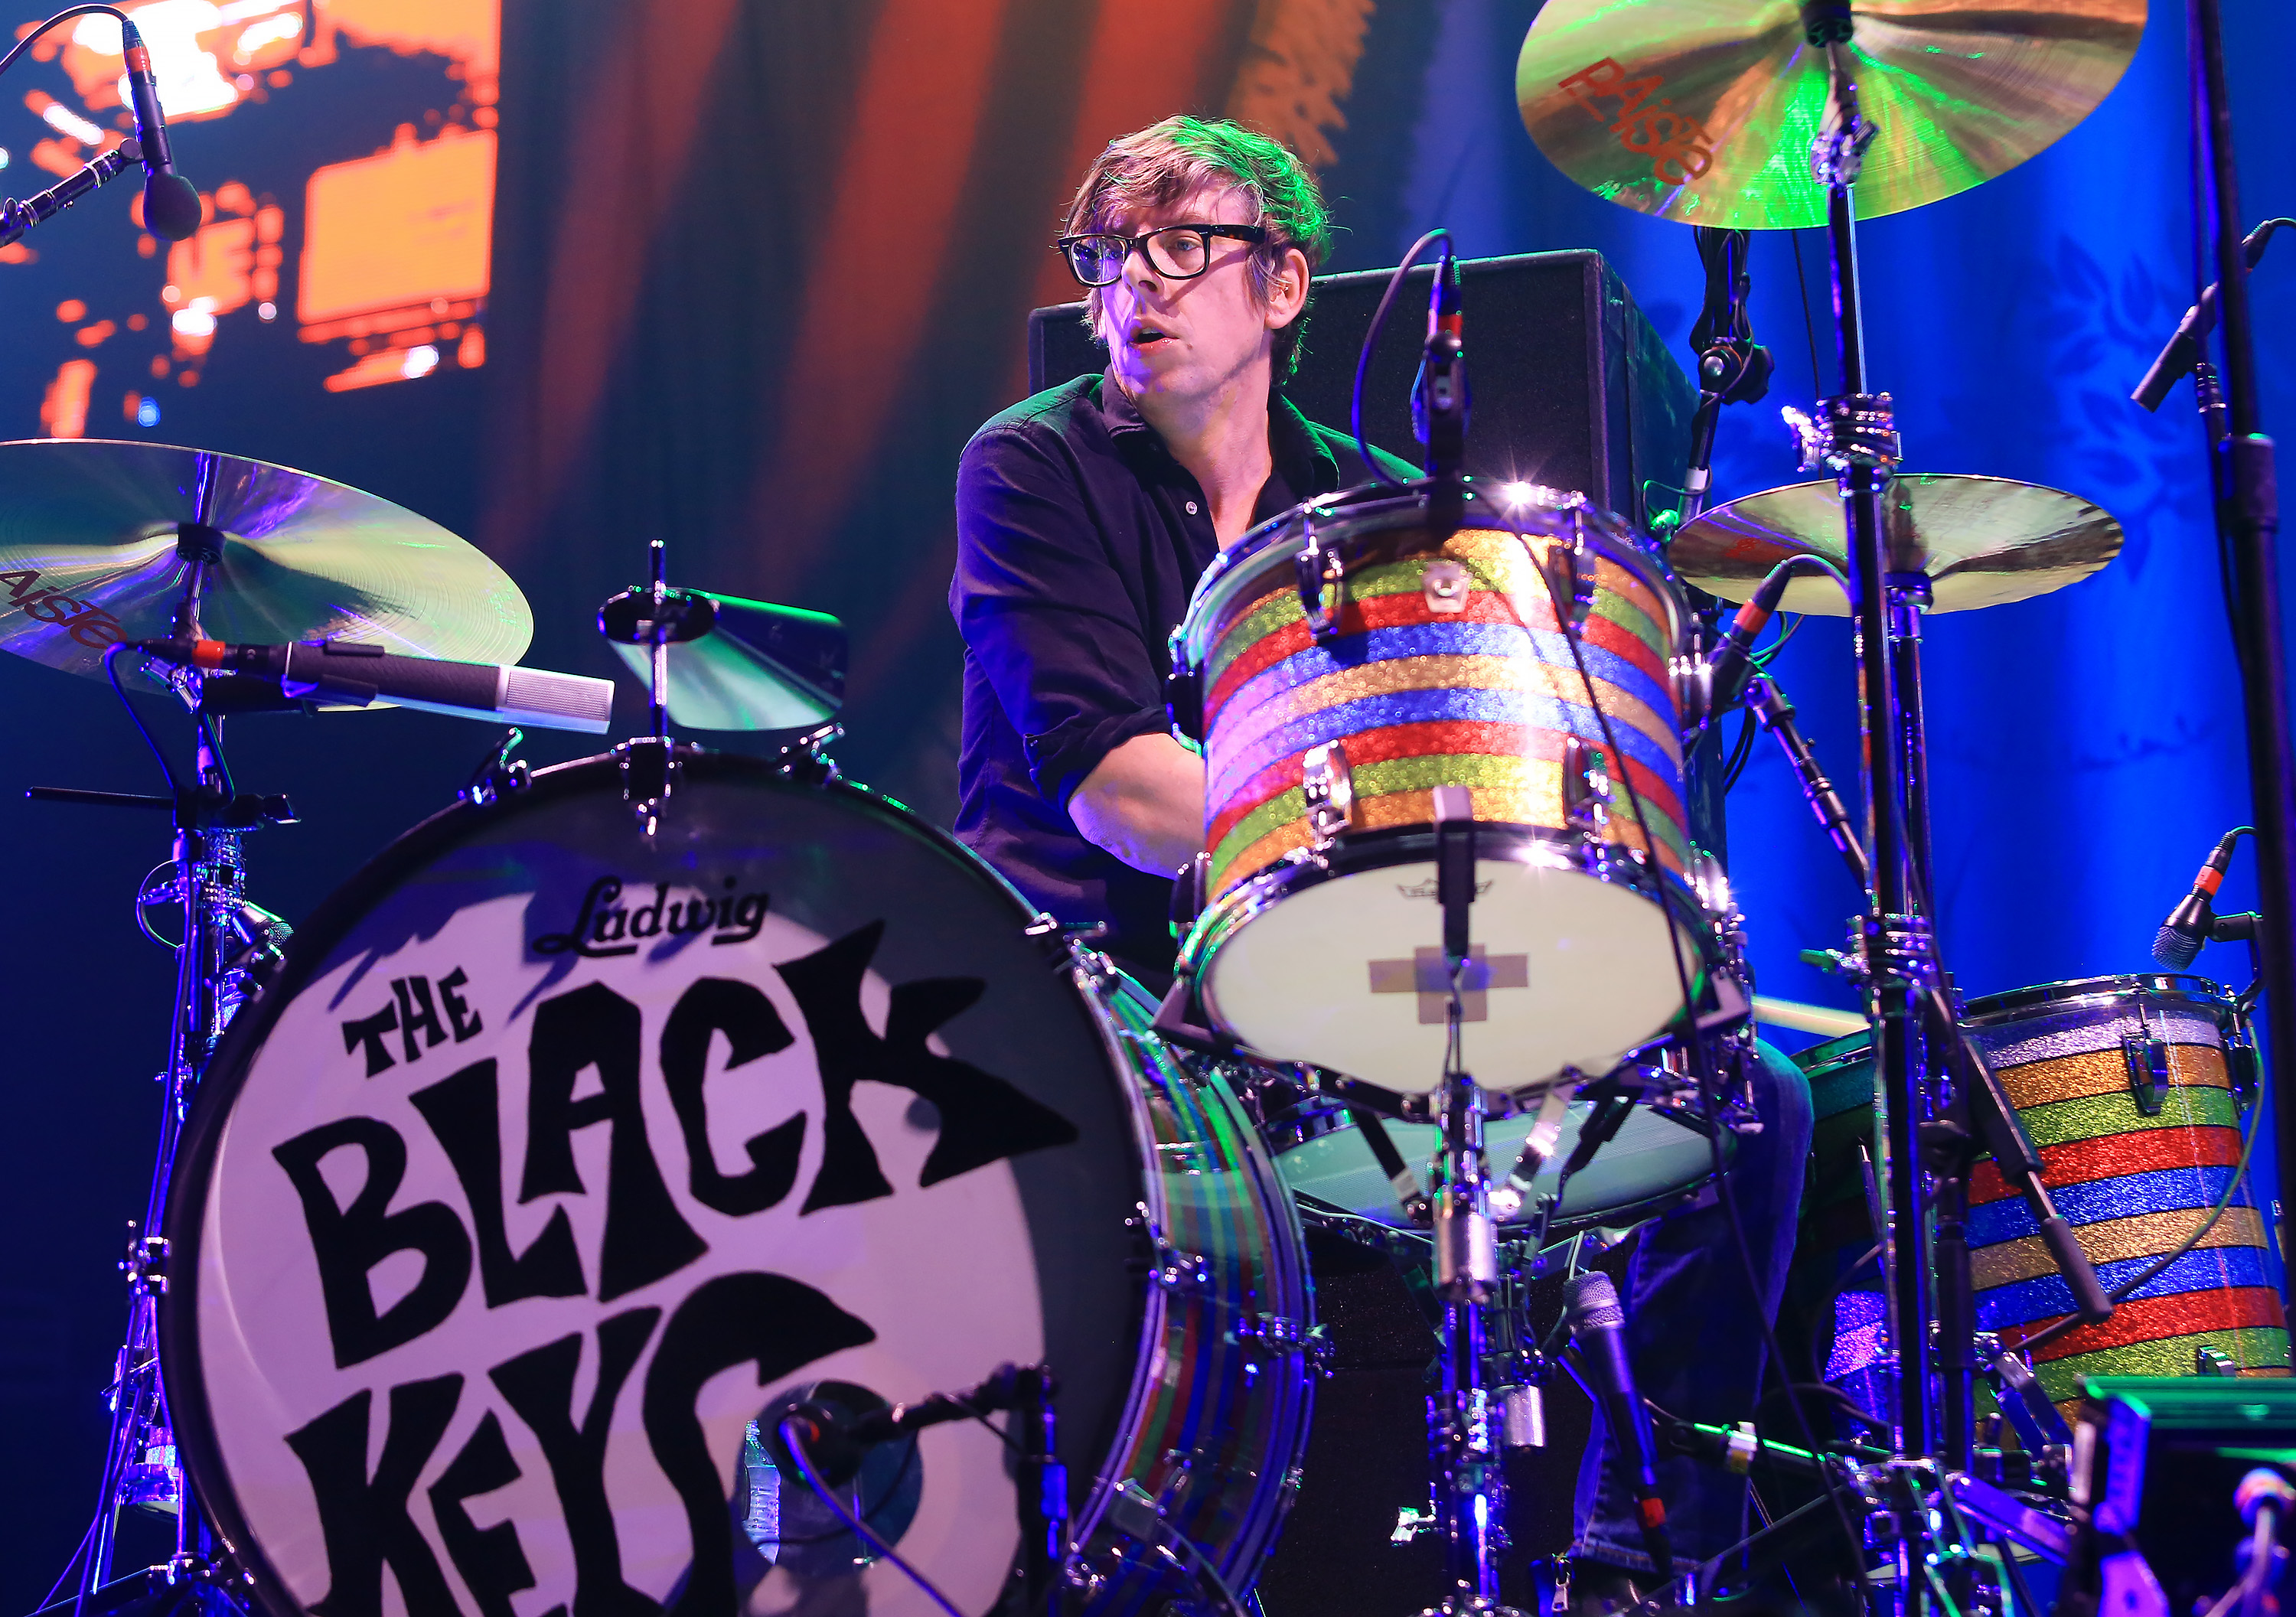 KANSAS CITY, MO - DECEMBER 21:  Musician Patrick Carney of The Black Keys performs at Sprint Center on December 21, 2014 in K